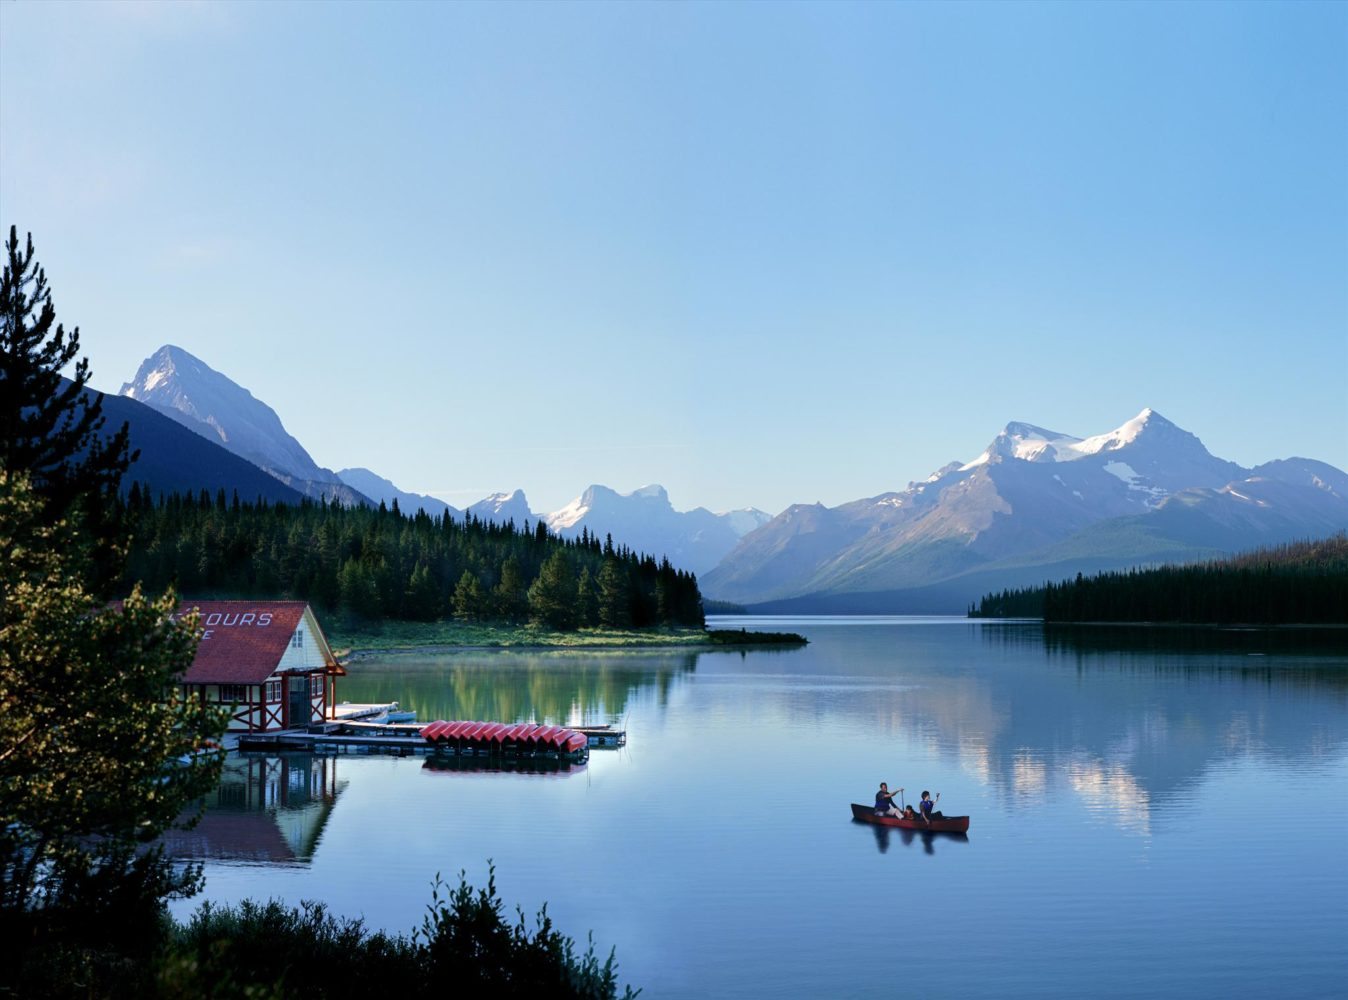 Canoeing, Maligne Lake, Jasper National Park